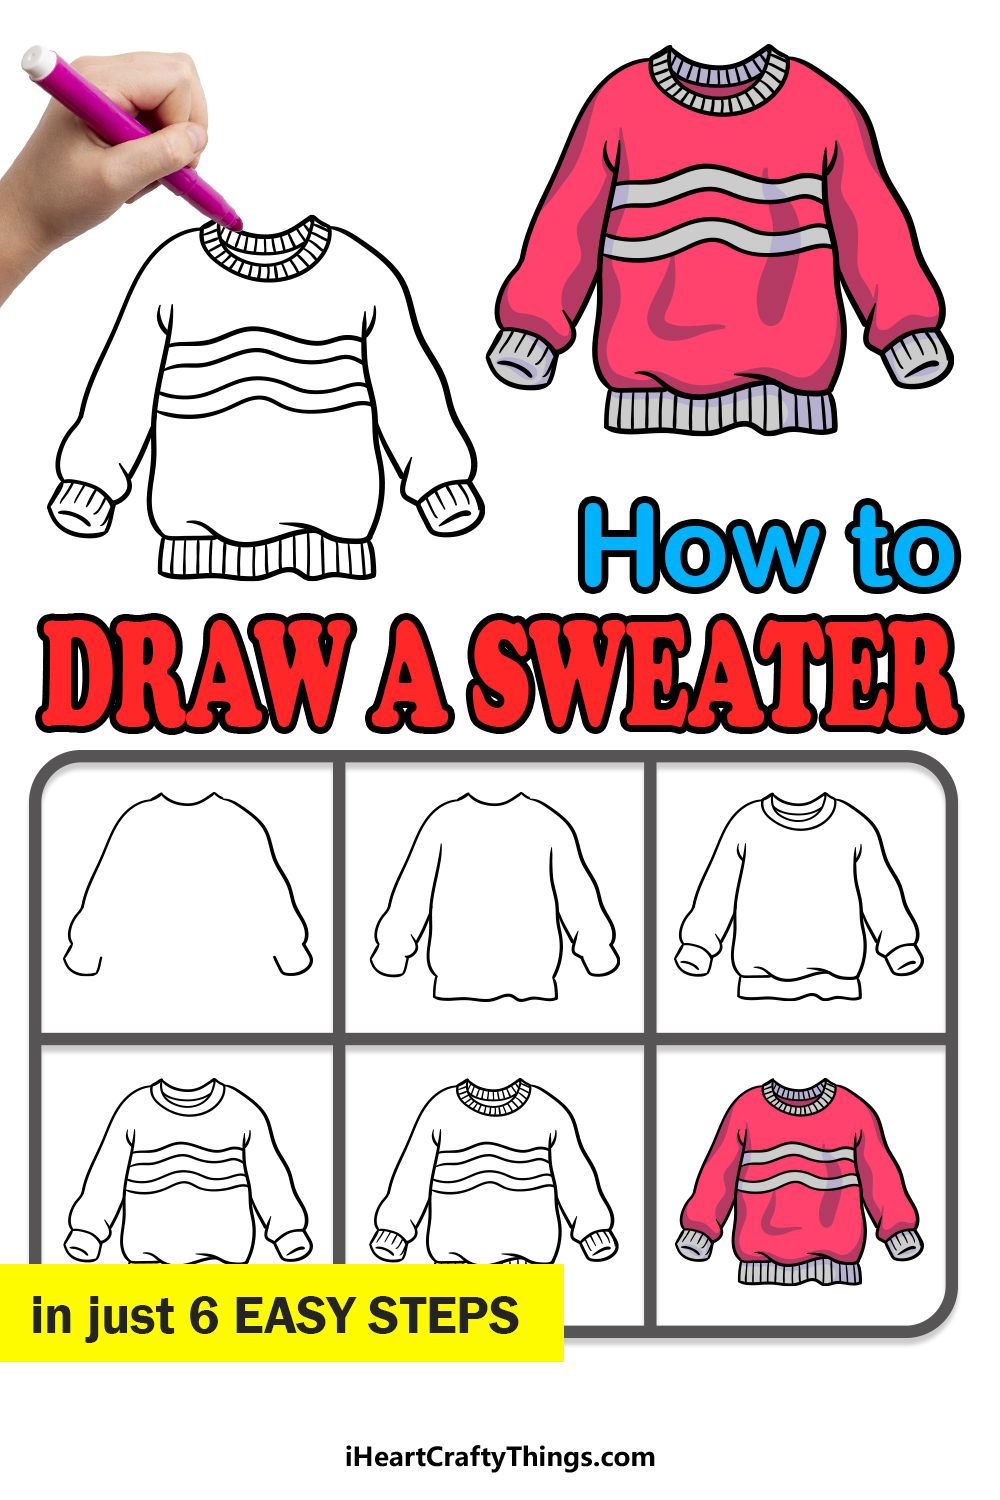 how to draw a sweater in 6 easy steps